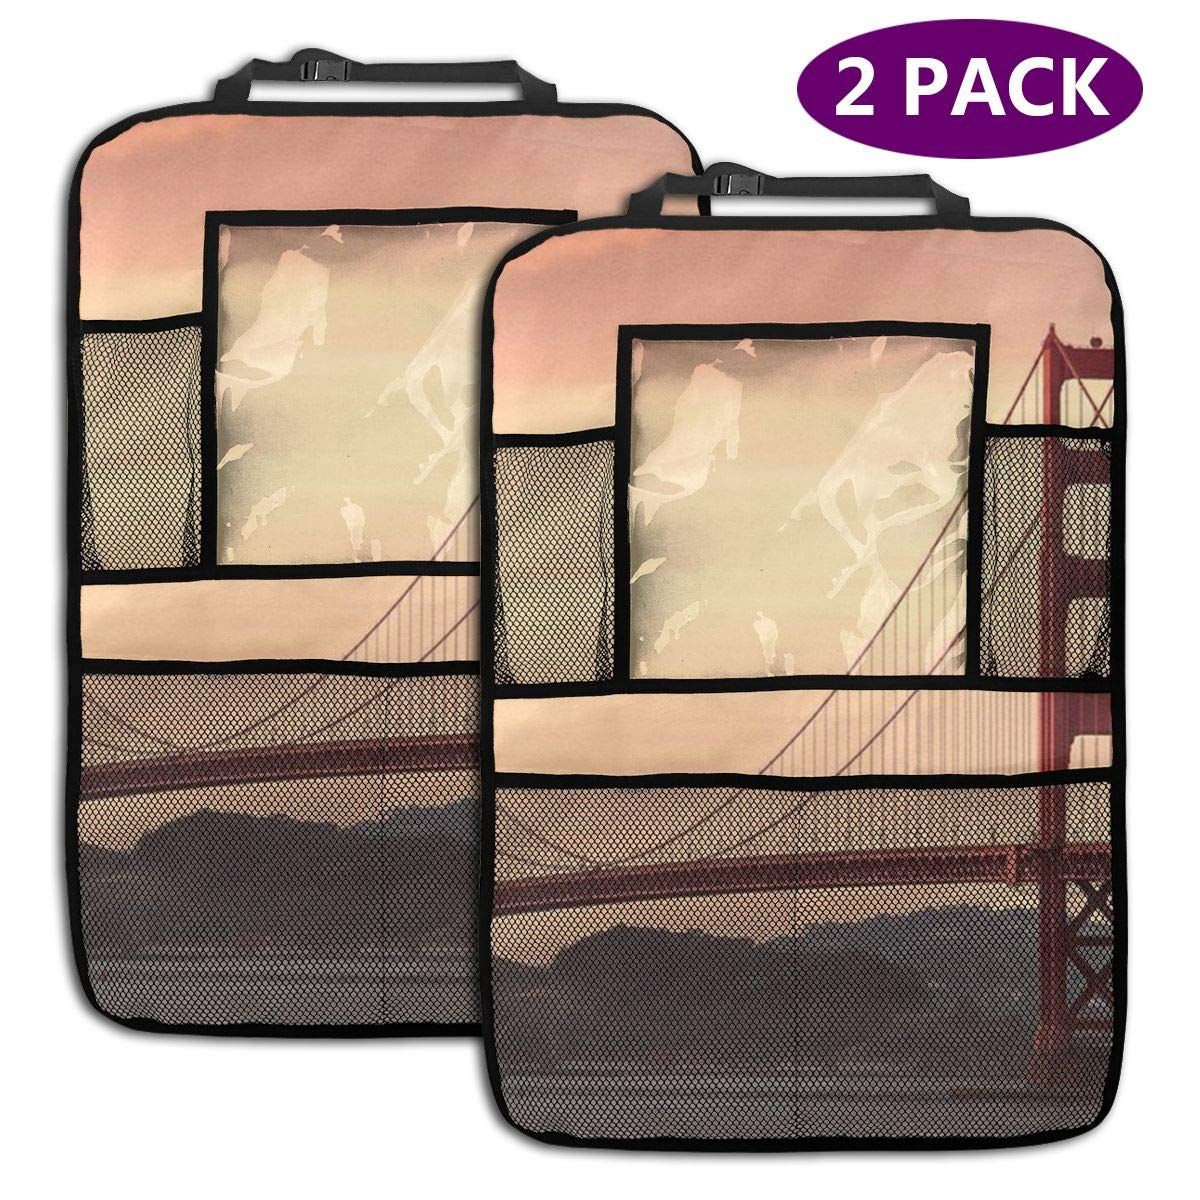 QF6FEICHAN Golden Gate Bridge in San Francisco Car Seat Back Protectors with Storage Pockets Kick Mats Accessories for Kids and Toddlers by QF6FEICHAN